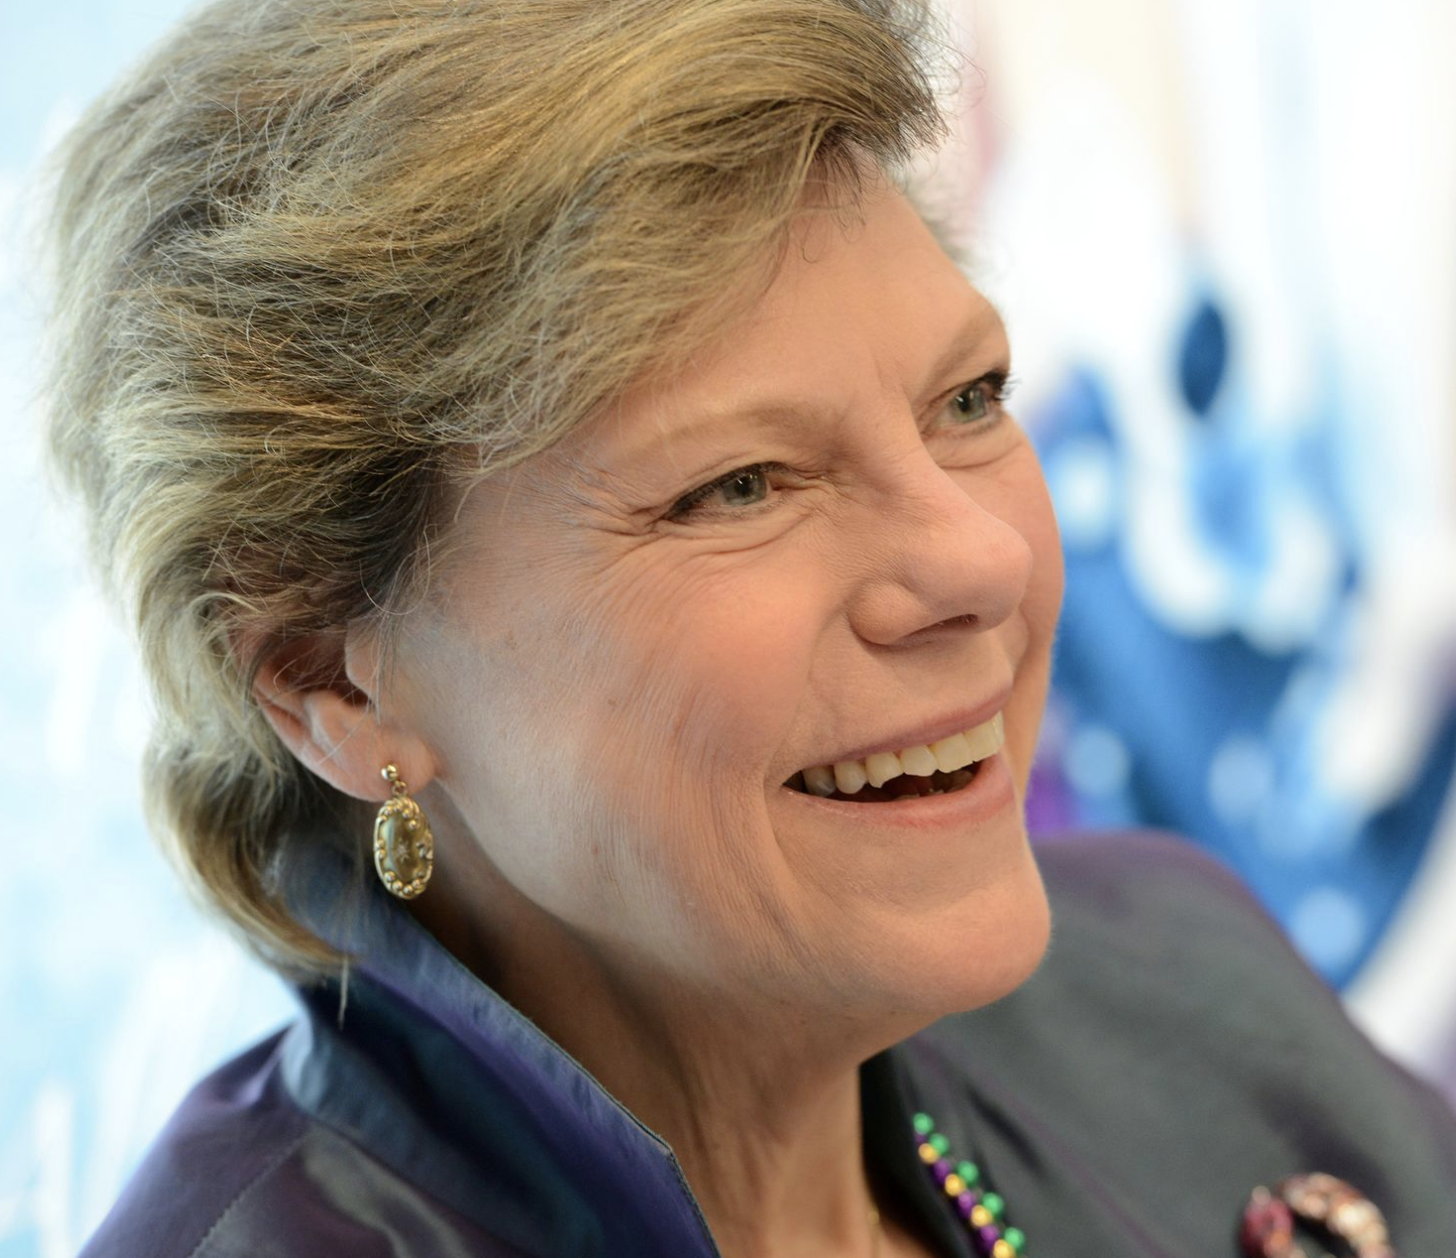 ABC News and NPR political journalist Cokie Roberts has died